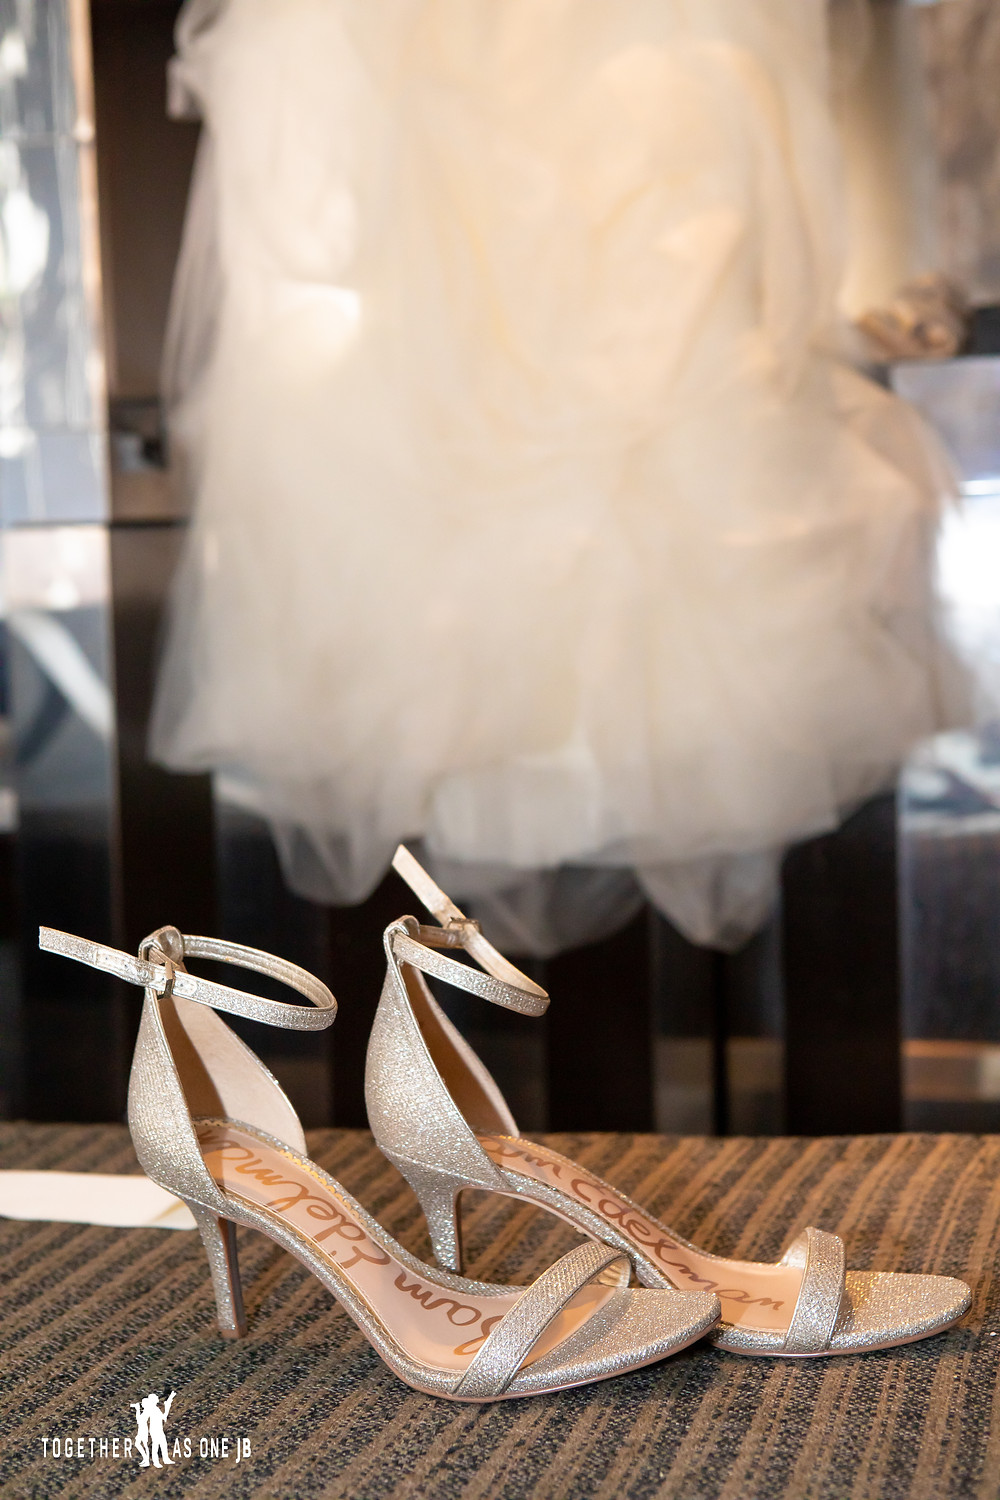 Close up of shoes with wedding dress in background in bridal suite